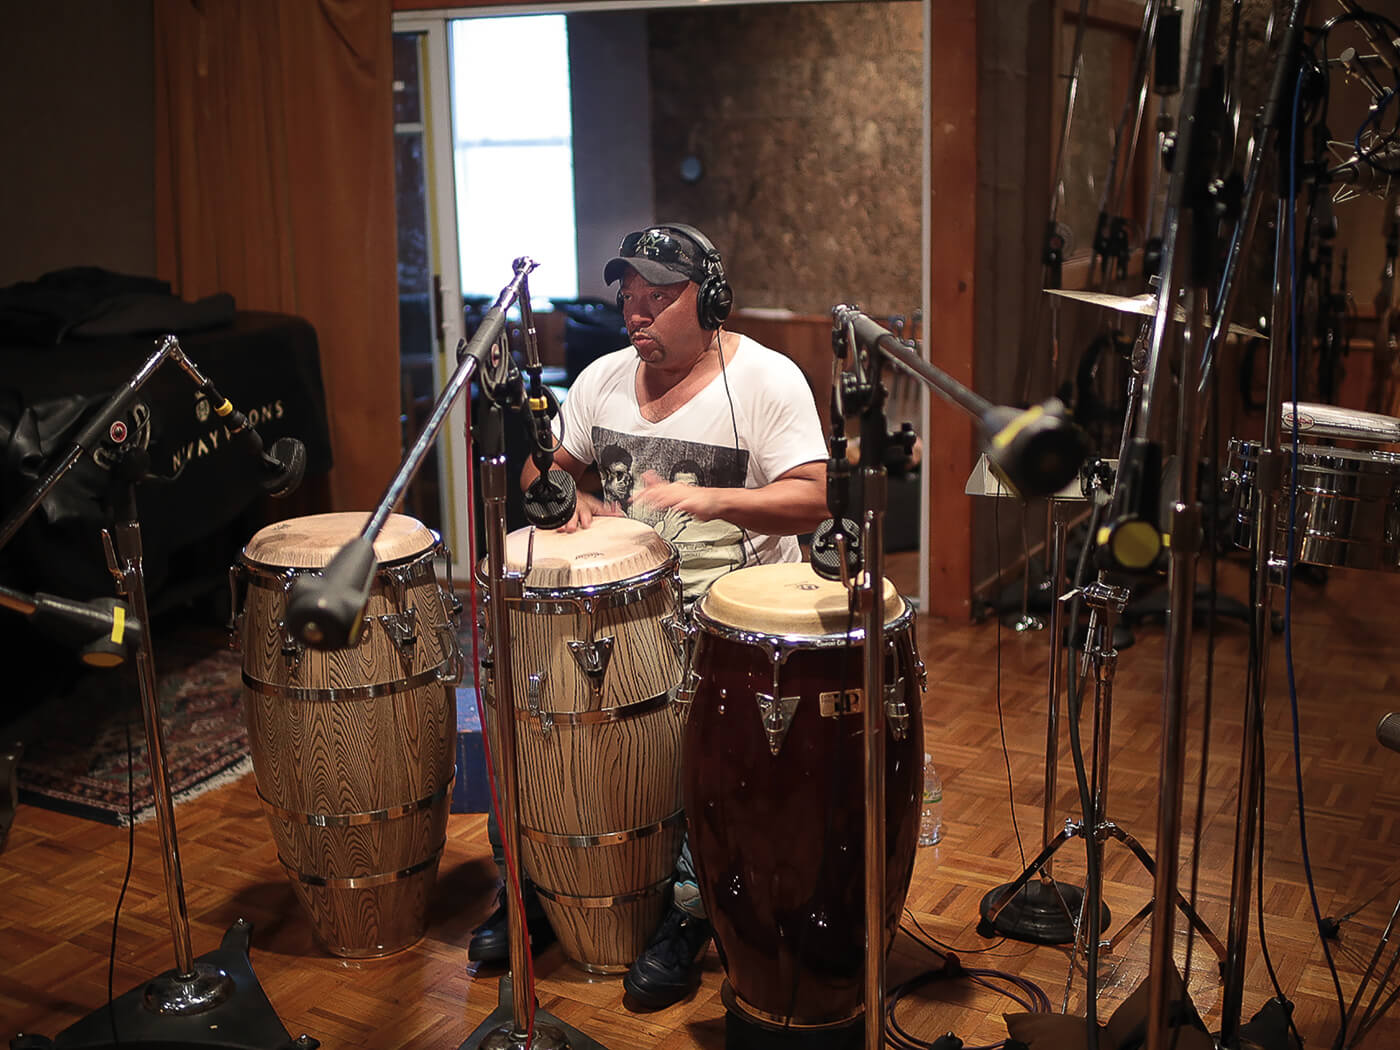 Toontrack Latin Cuban Drums and Percussion